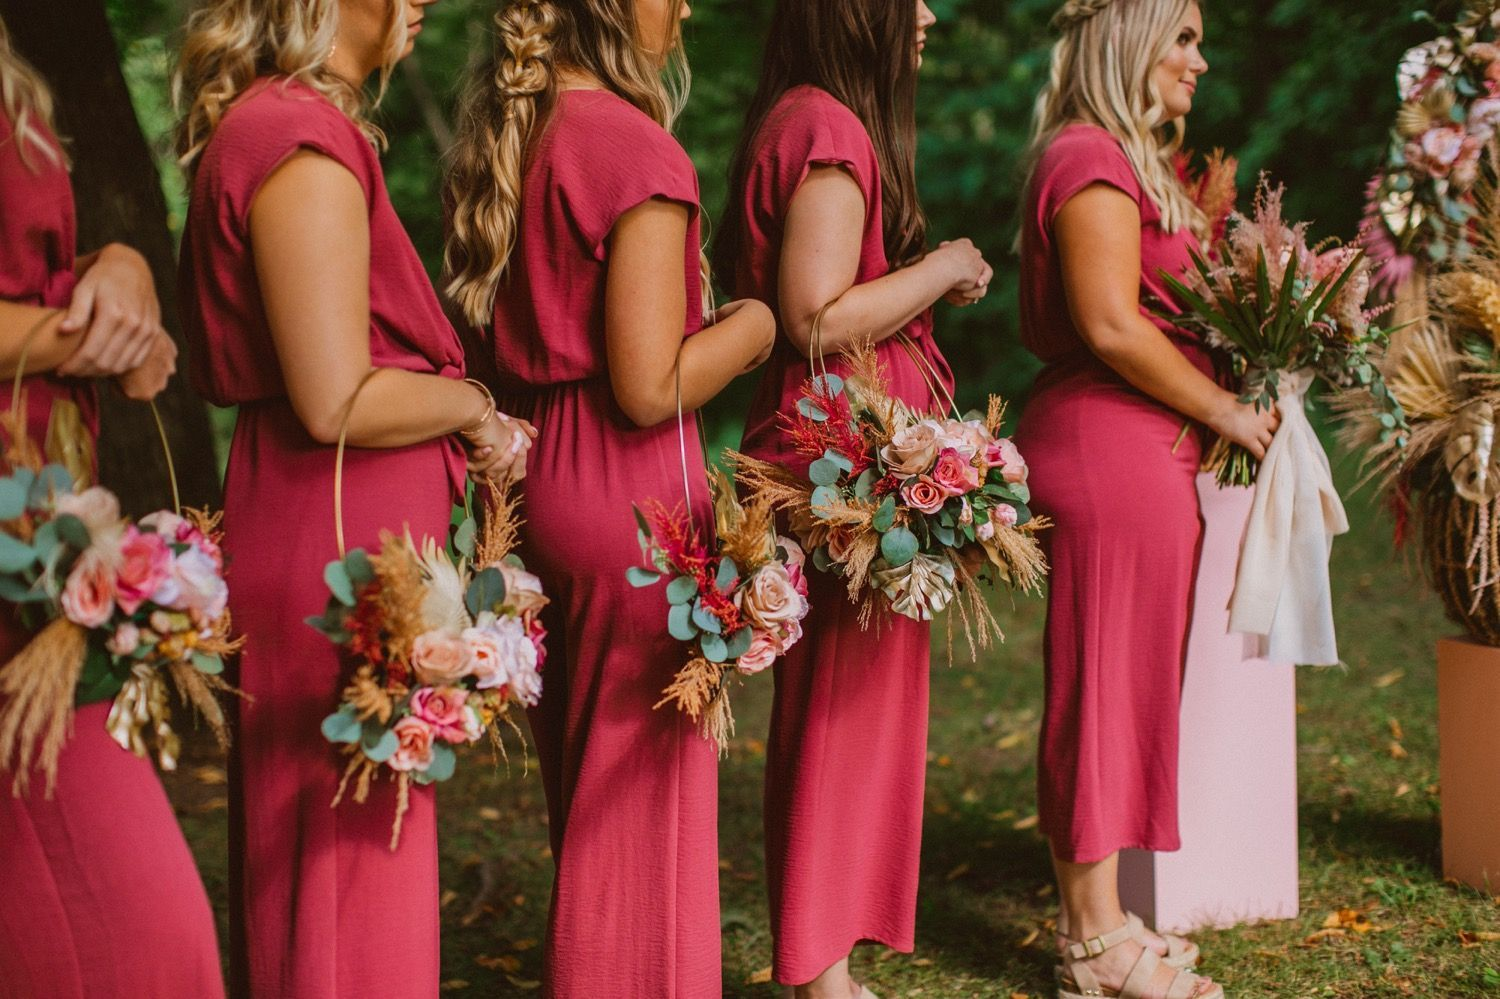 Literally the prettiest bride and her bridesmaids in Cedar Rapids, Iowa with pink bridesmaids JUMPSUITS and the most original wooden pink baskets holding their bouquets for their bouquets rings! Seriously to die for and the best pop of color for the most green forrest wedding! Best styled bridal party everrrrr! | Photo but: Olivia Markle Photography #bridesmaides #cedarrapidswedding #elopement #wedding #bridalpartystyle #pink #bridesmaids #bridesmaidjumpsuits Literally the prettiest bride and he #bridesmaidjumpsuits